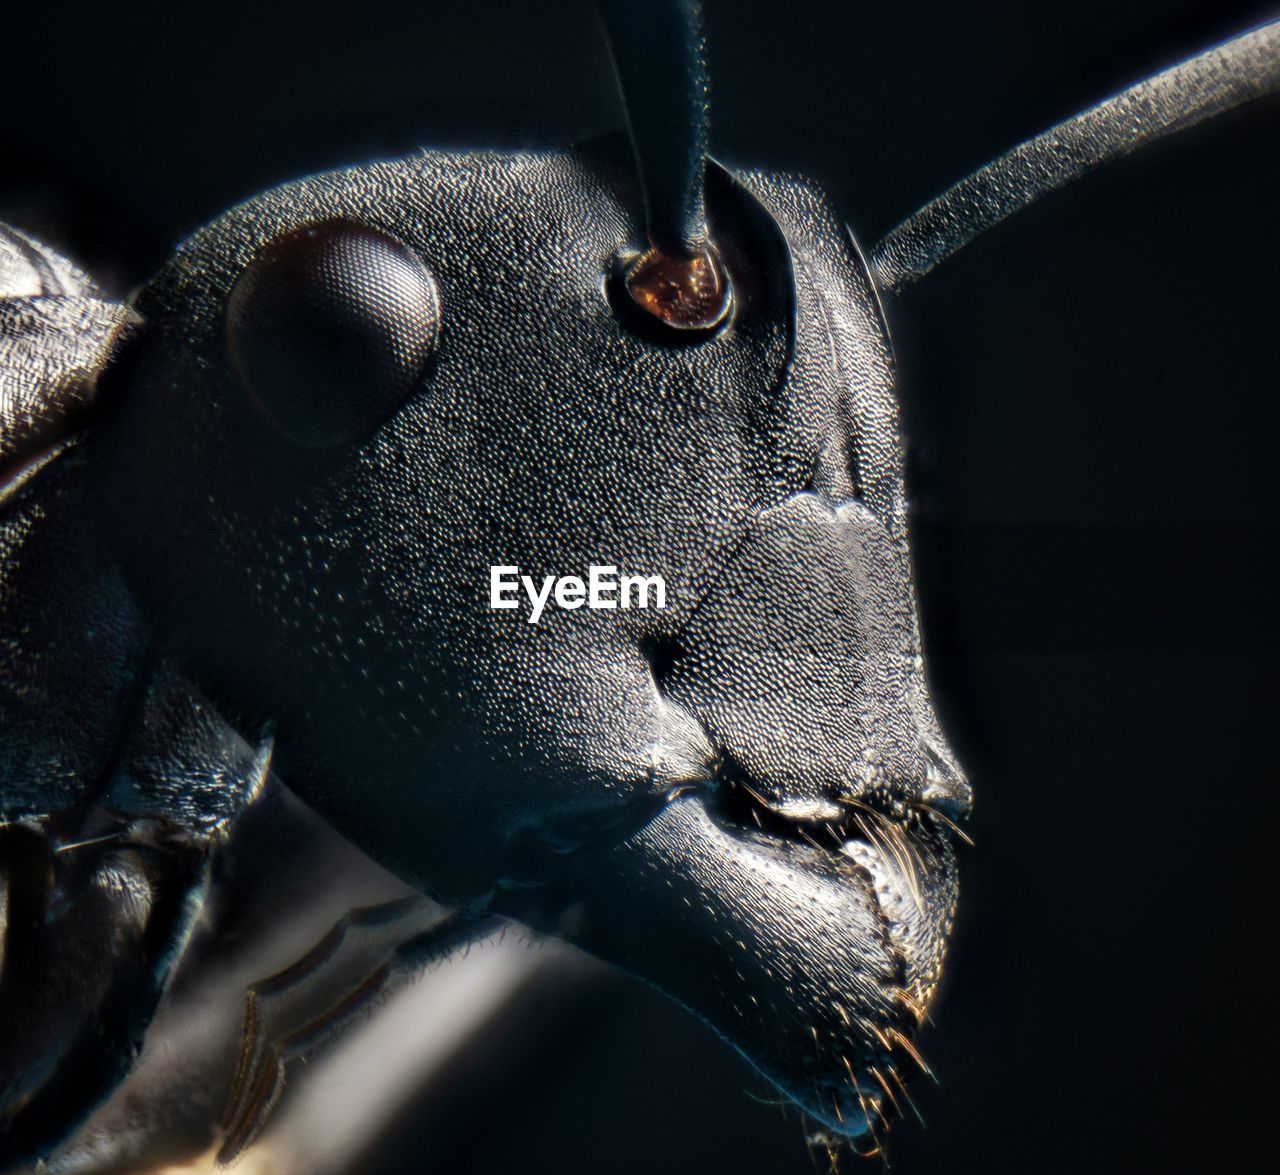 close-up, no people, one animal, animal, animal themes, animal body part, indoors, metal, nature, selective focus, day, mammal, animal wildlife, invertebrate, animal head, sunlight, machine part, insect, pattern